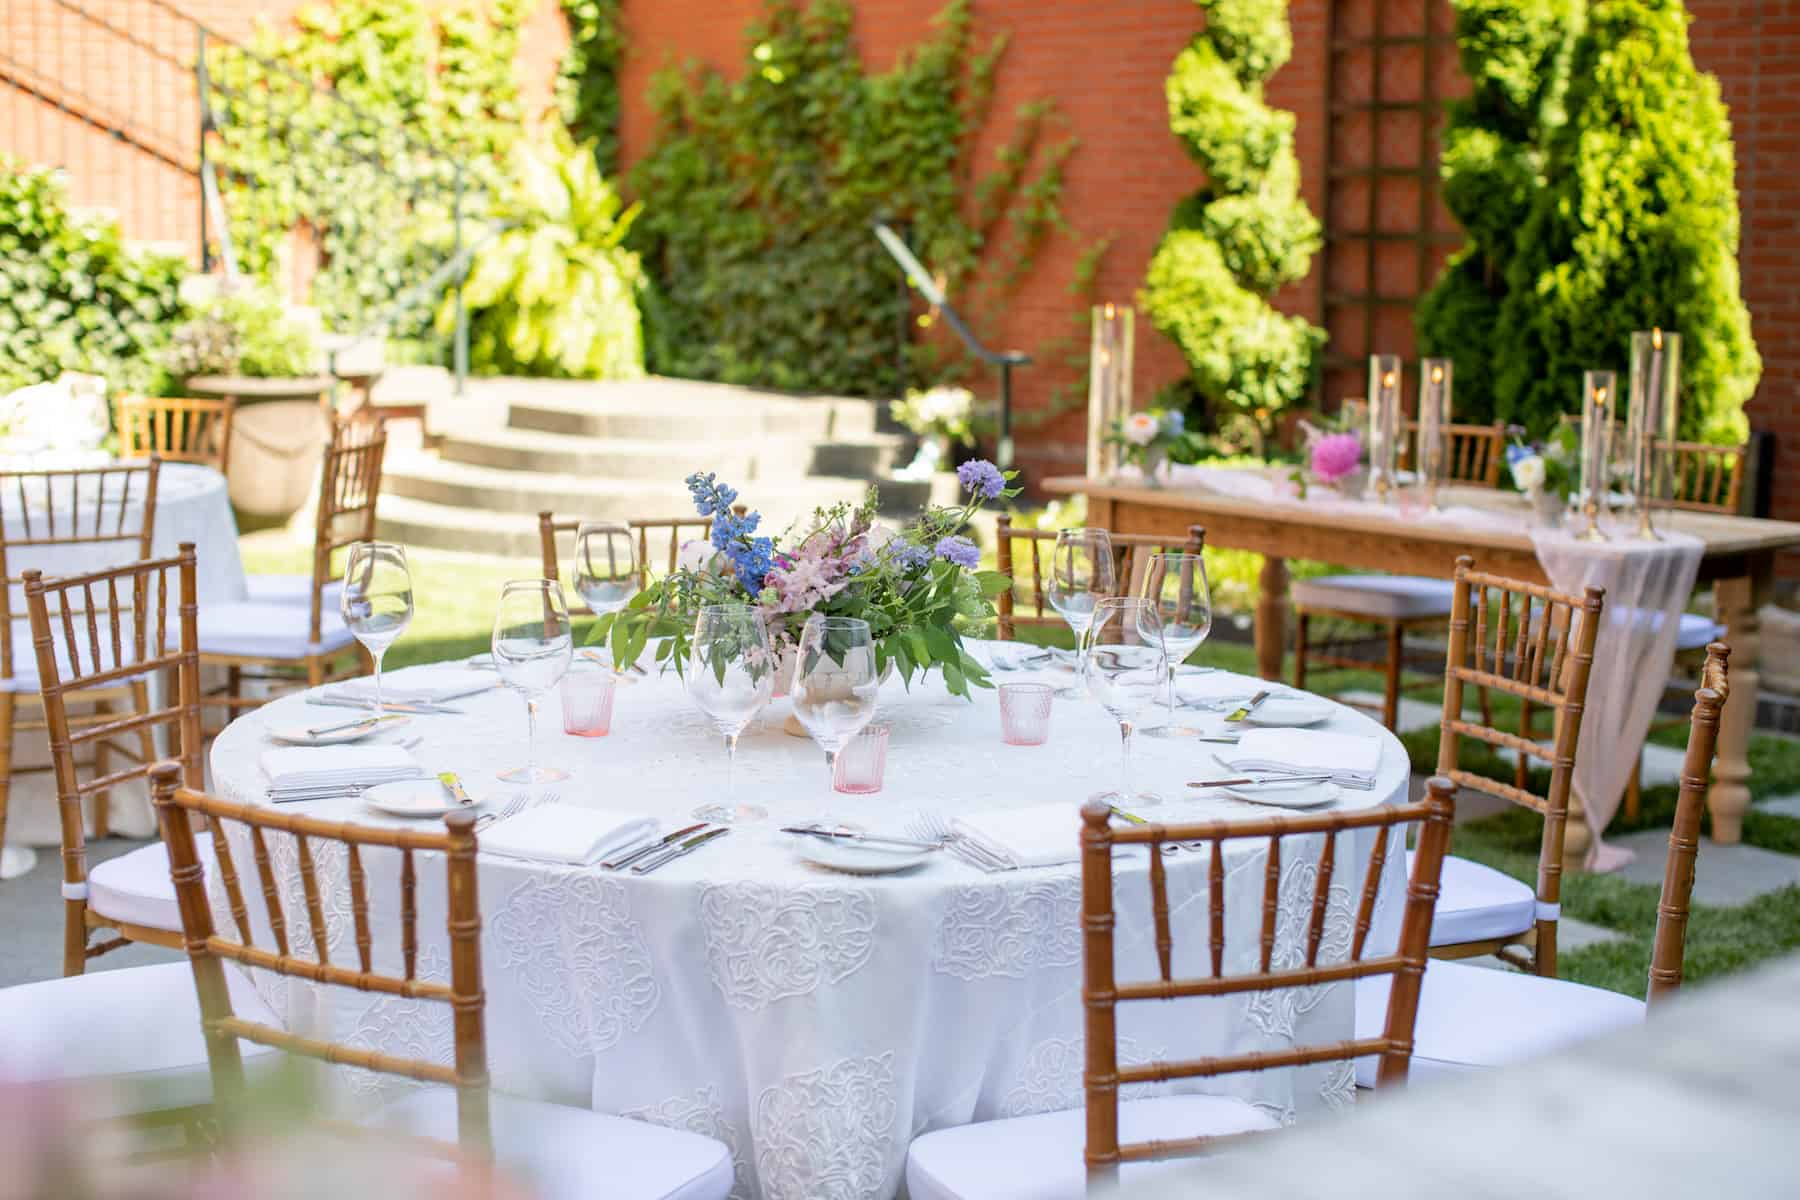 wedding guest tables with floral centerpieces and candles